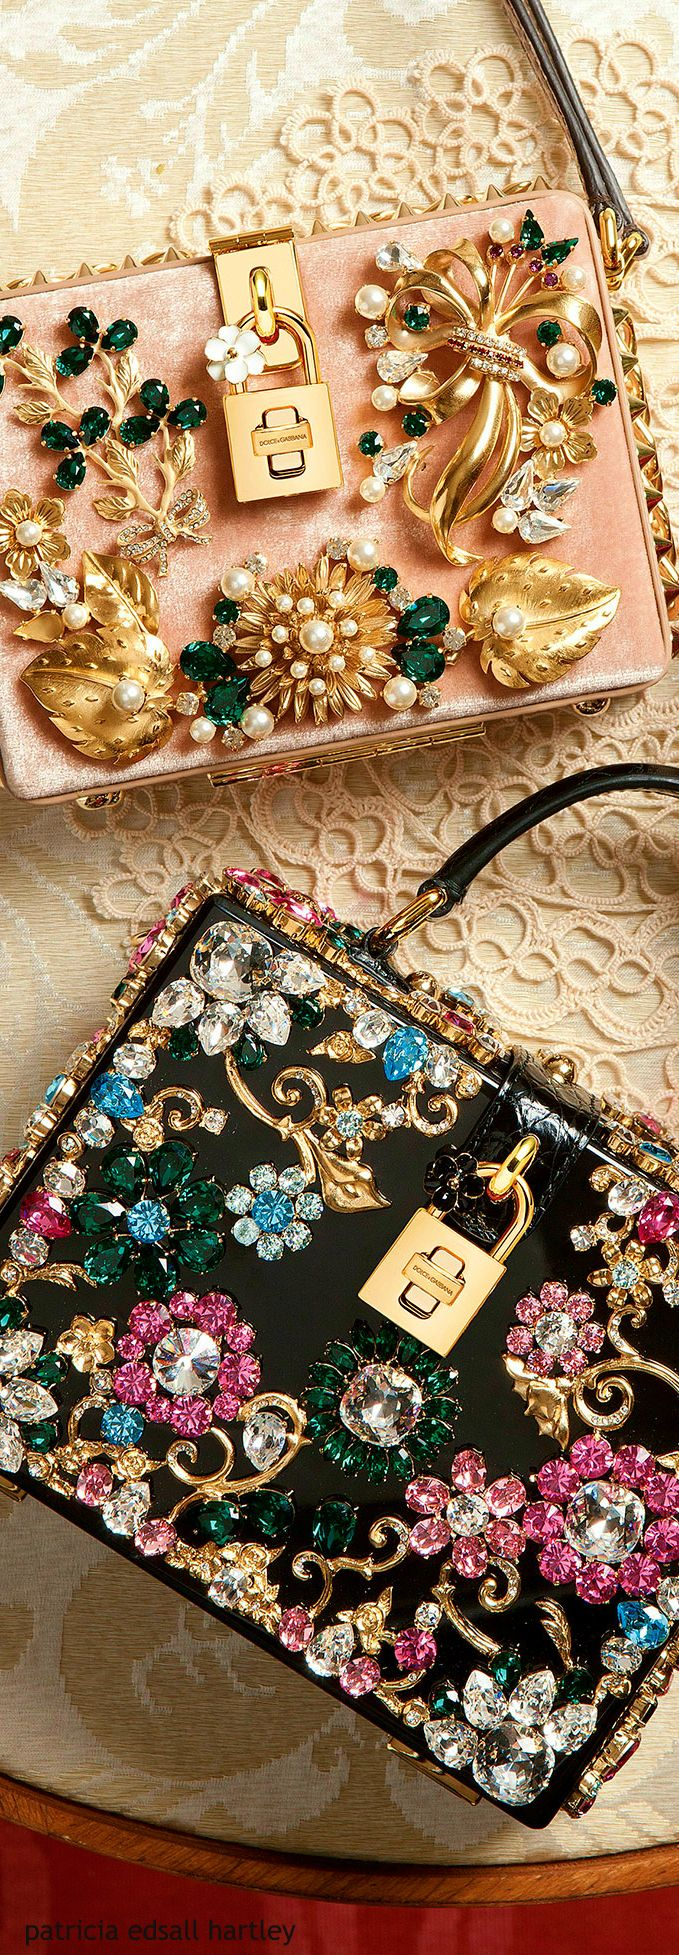 Looks like a lot of the fabulous pins we get in. Add them to any bag and boom you're stylin! Dolce & Gabbana - Winter 2016